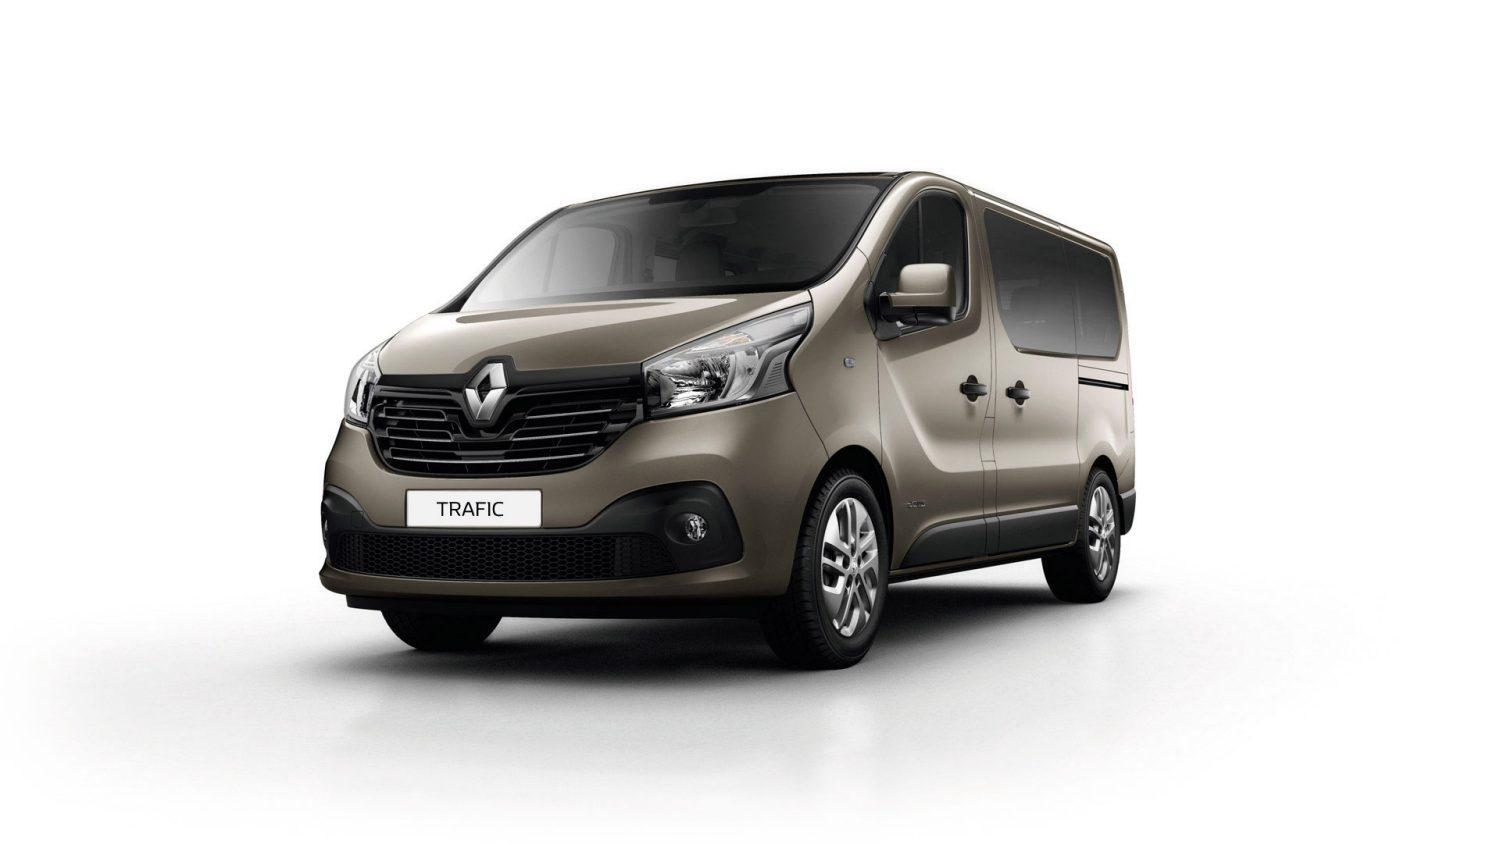 renault trafic zvo niki 4 kanalni oja evalec in woofer supersound. Black Bedroom Furniture Sets. Home Design Ideas